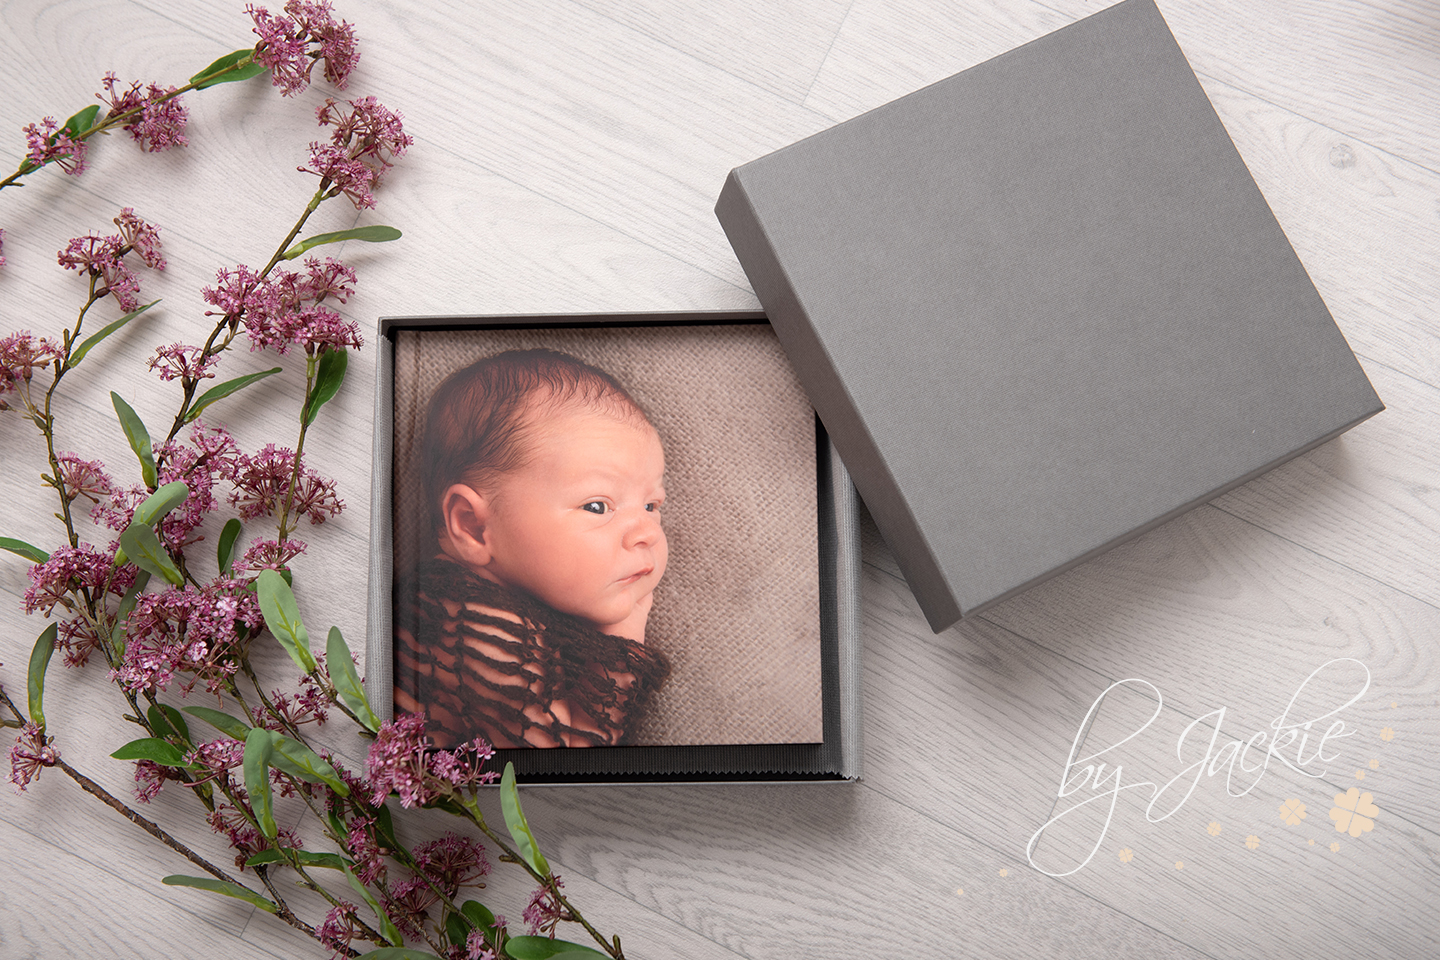 Stunning baby albums by Babies By Jackie